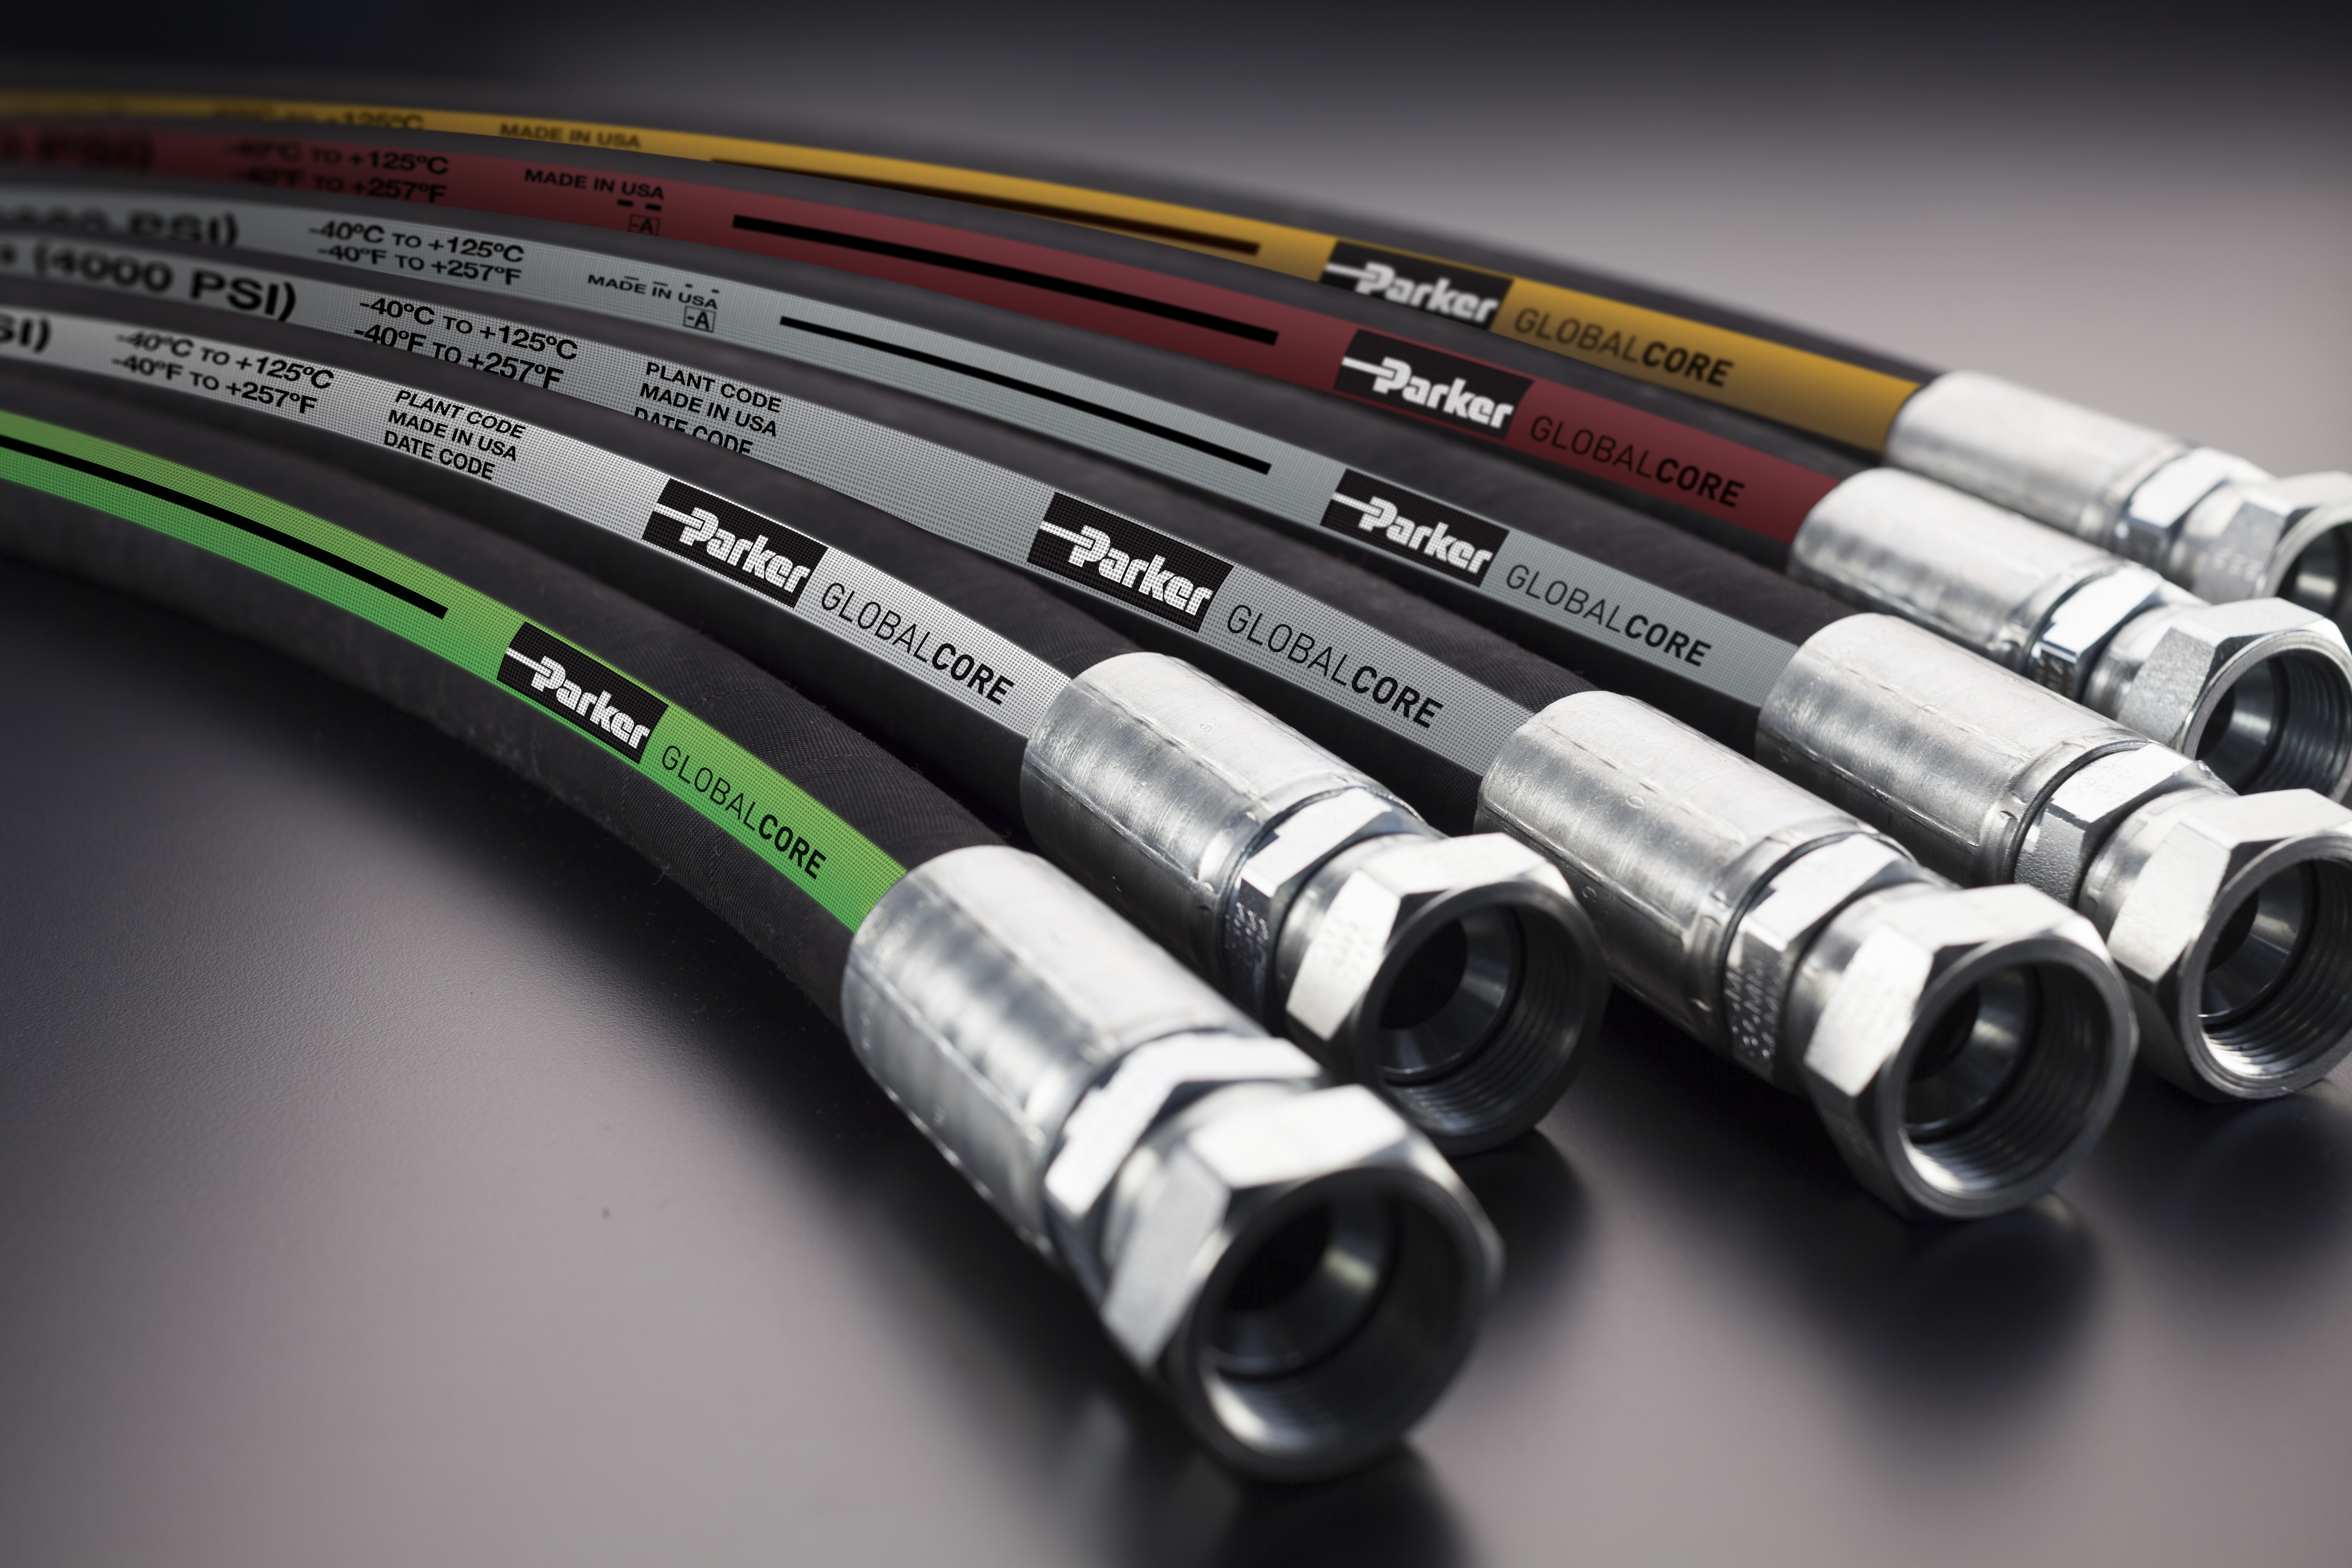 Parkers New GlobalCore 187 High Performance Hydraulic